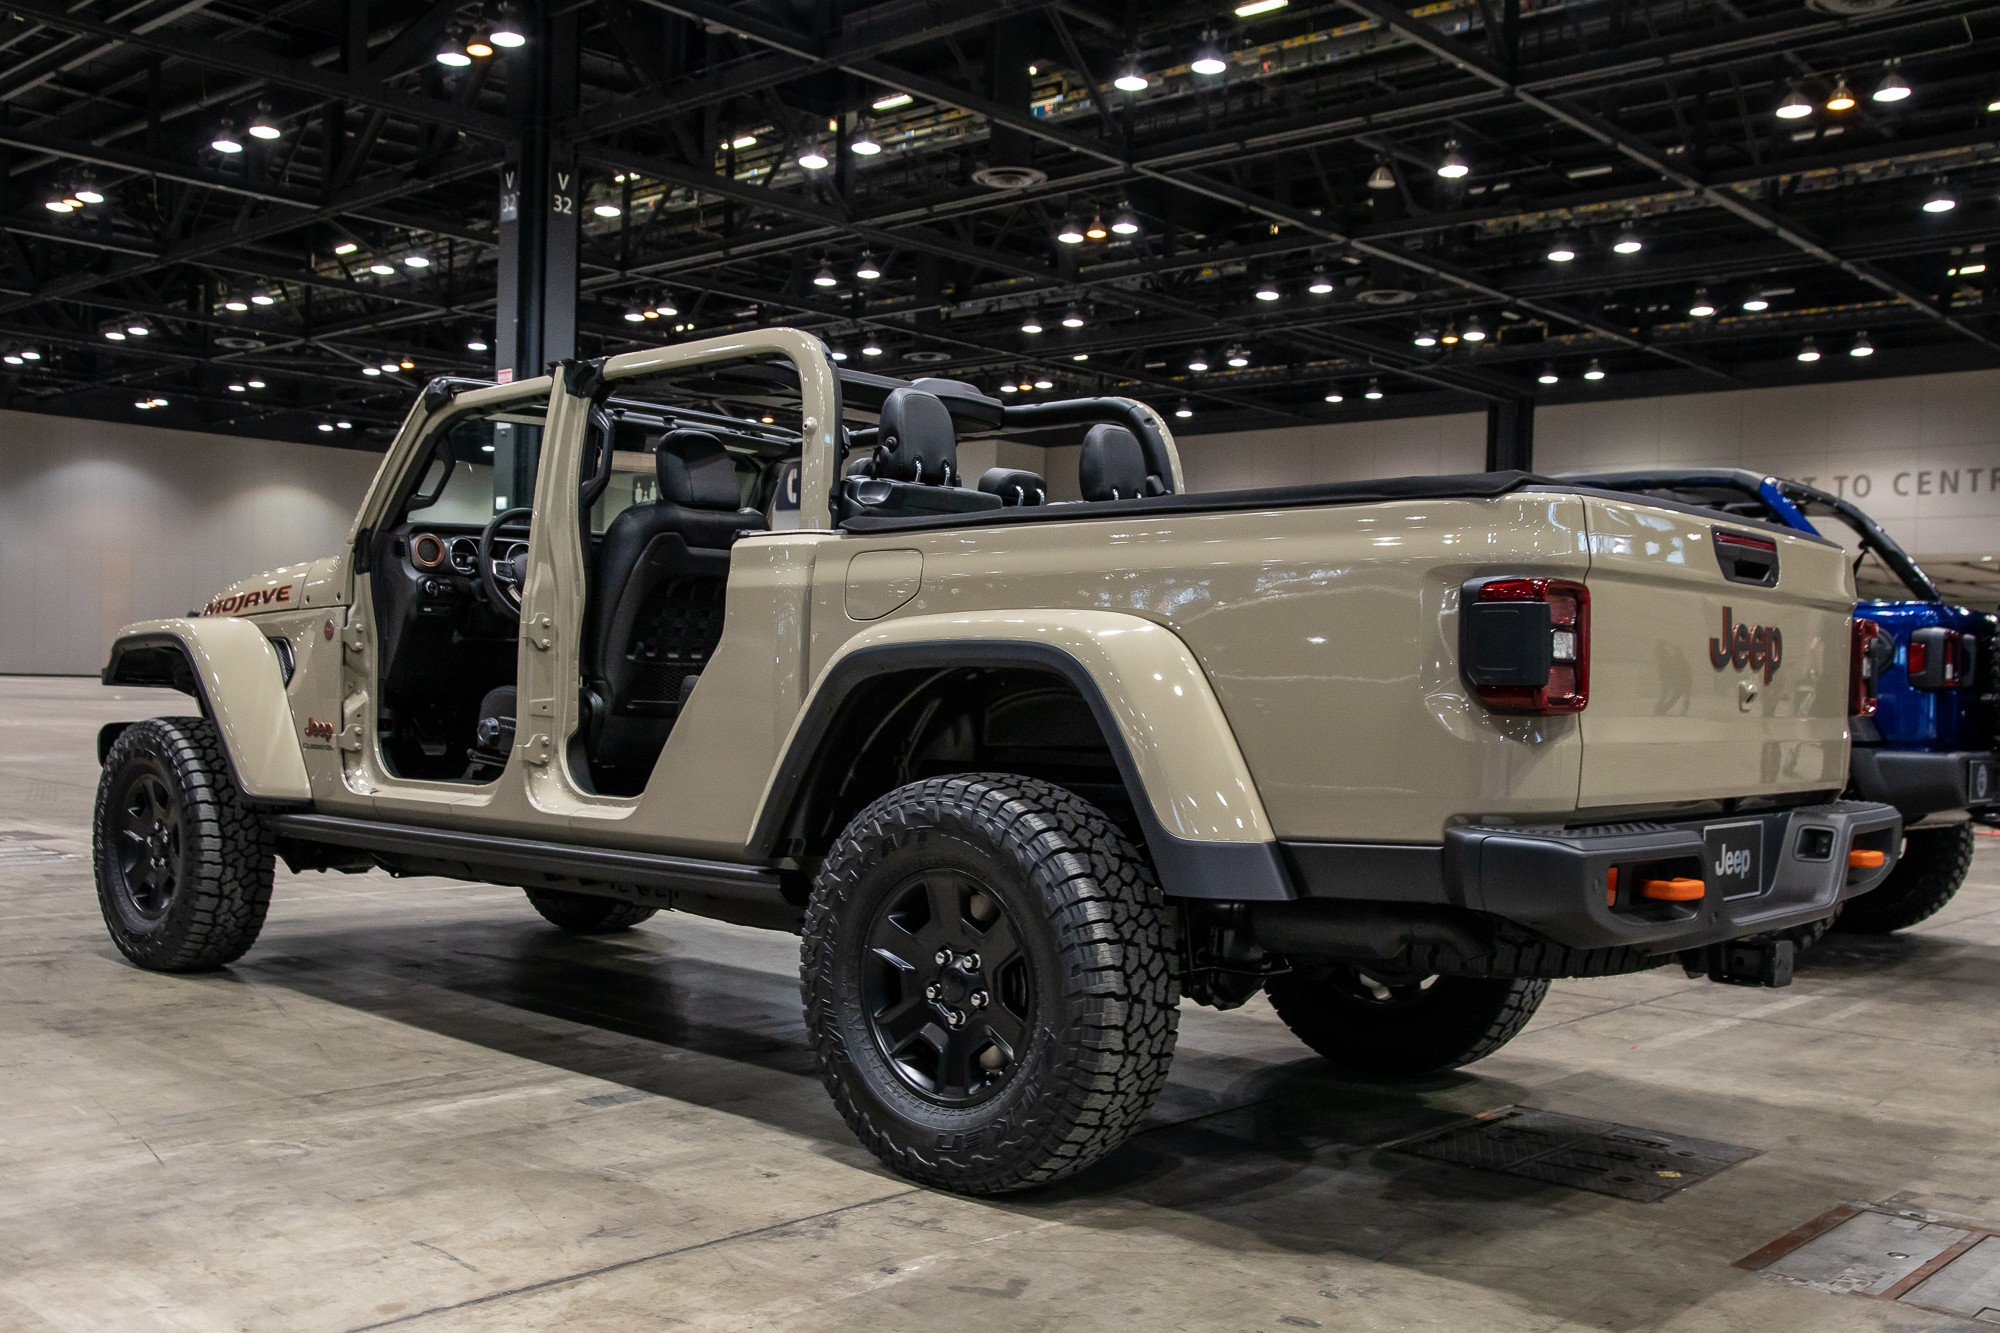 All The Pickup Truck News Jeep Gladiator Mojave Ready To Dunk On Dunes And The Competition And More News Cars Com